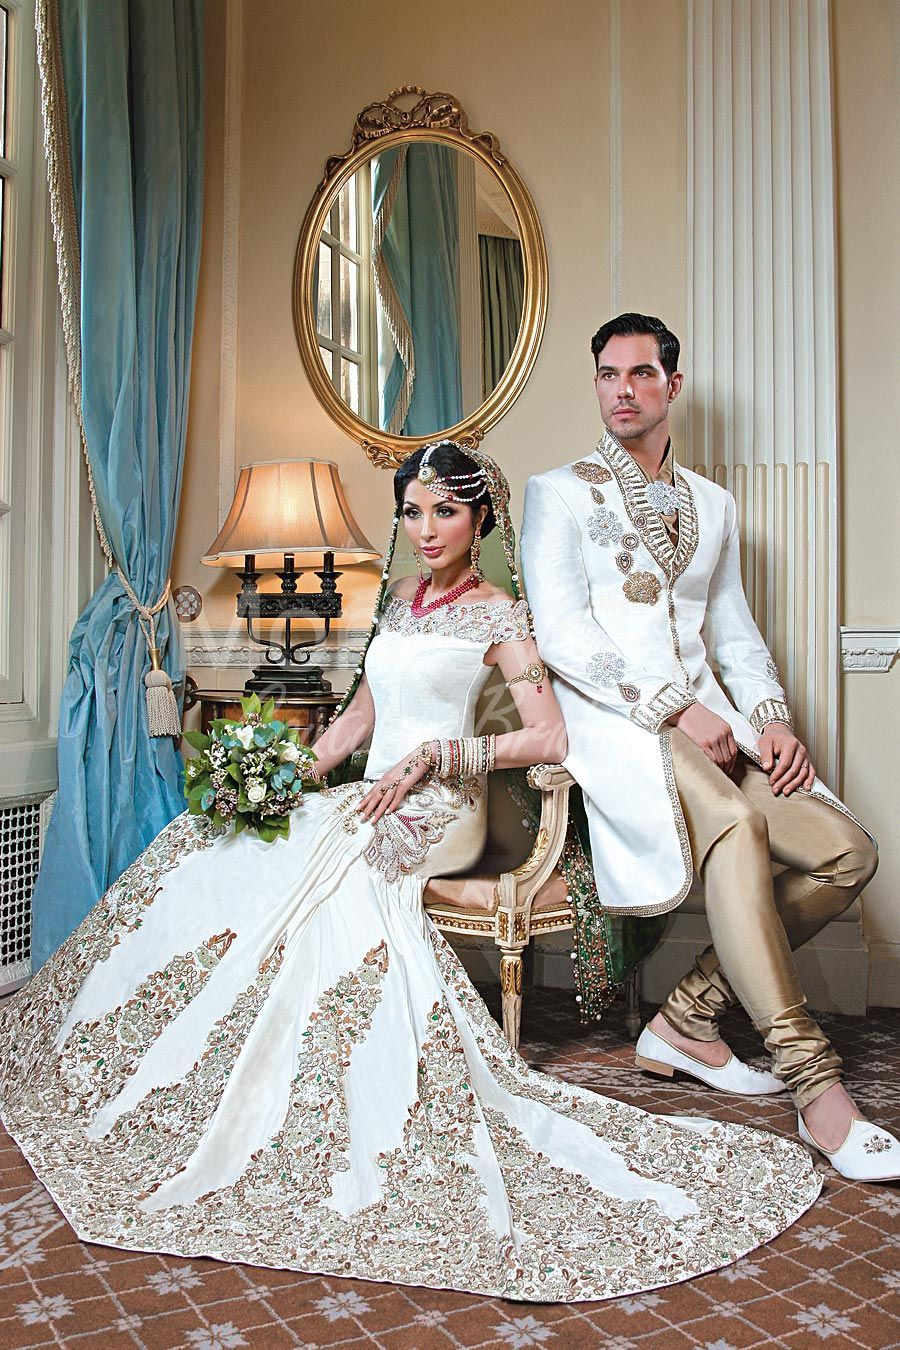 White Wedding Dress Online Vintage White Wedding Dresses And Gowns For Brides United State White Indian Wedding Dress Indian Wedding Dress Asian Wedding Dress